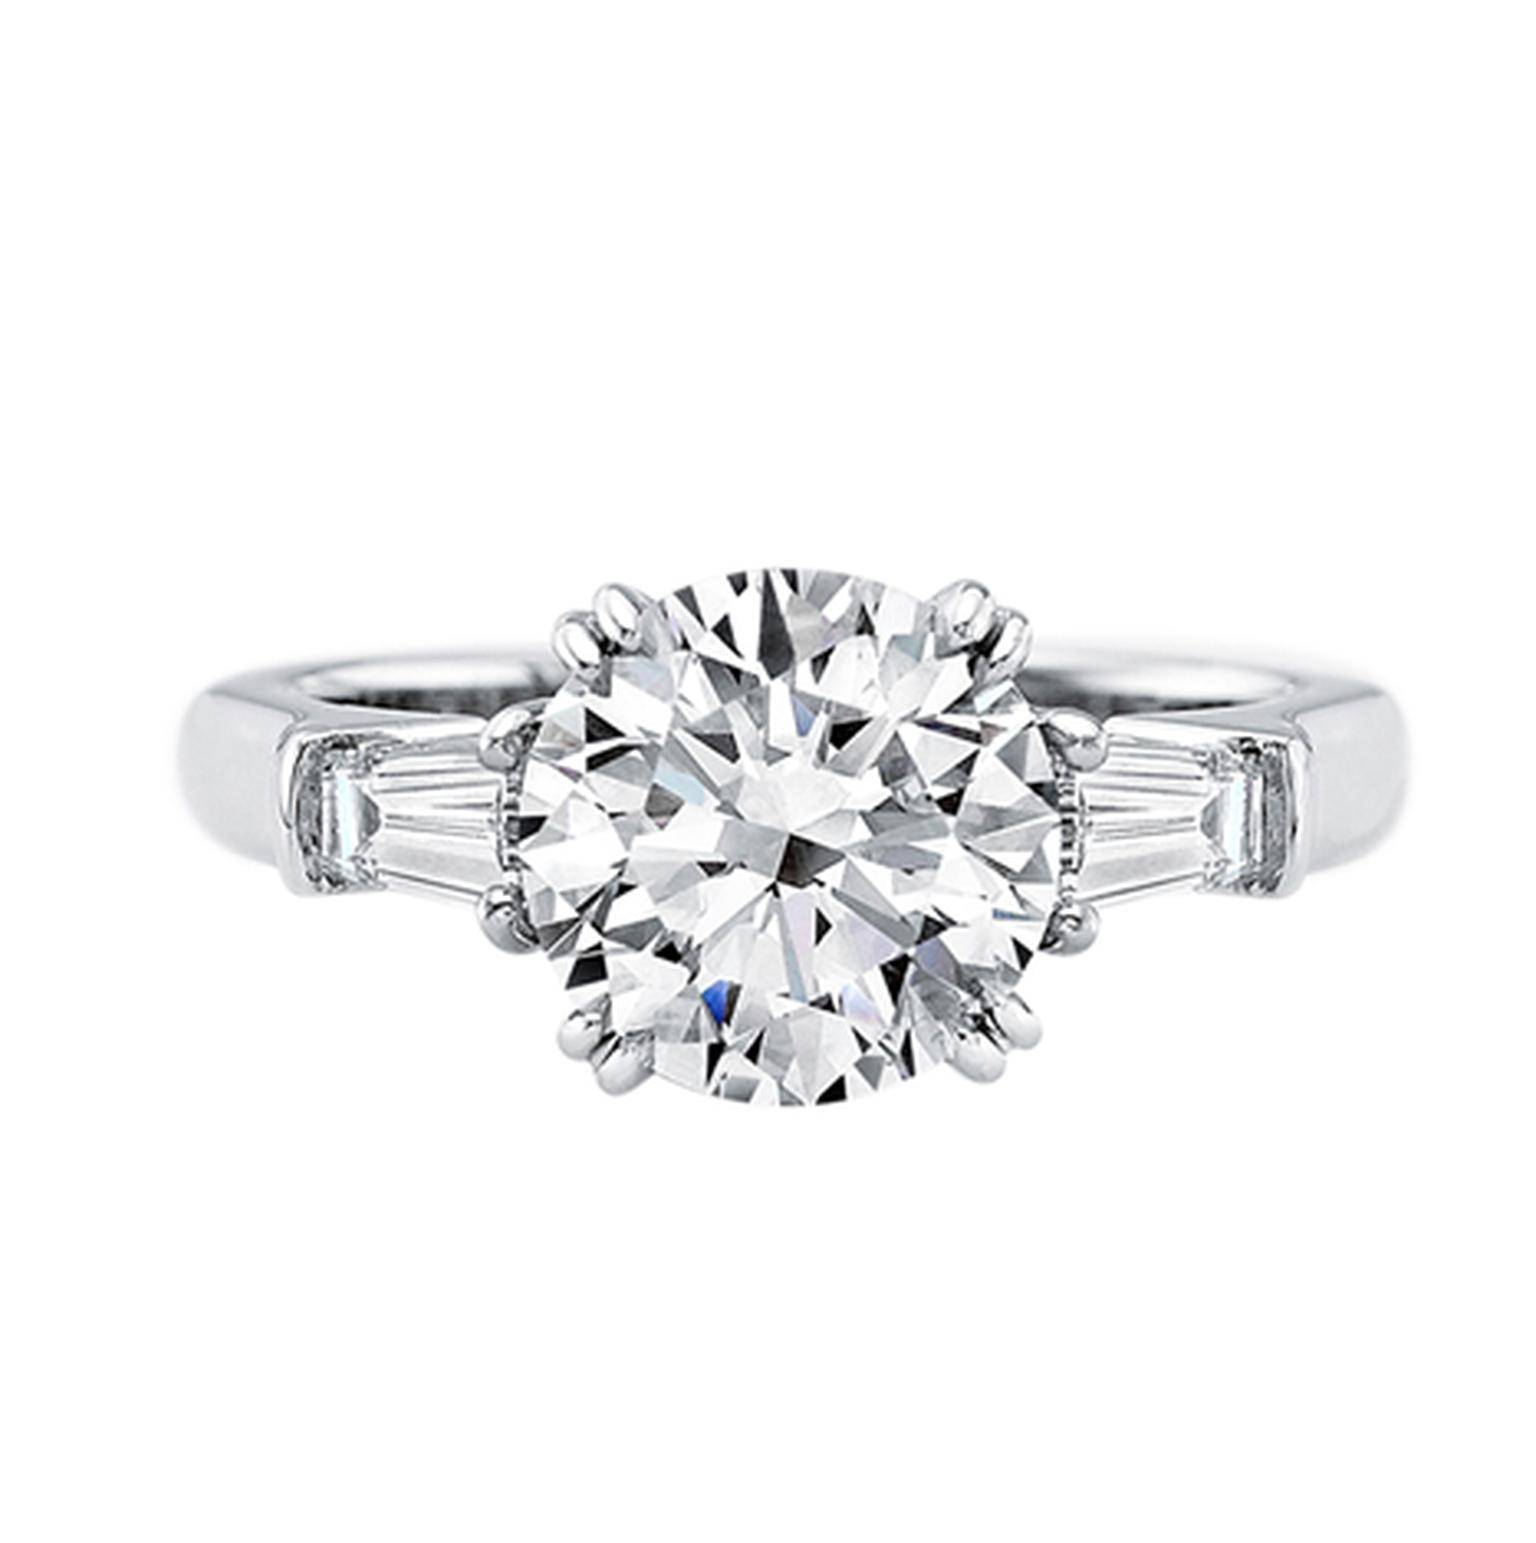 Harry Winston Classic Winston Platinum Diamond Engagement Intended For Harry Winston Engagement Rings (Gallery 8 of 15)